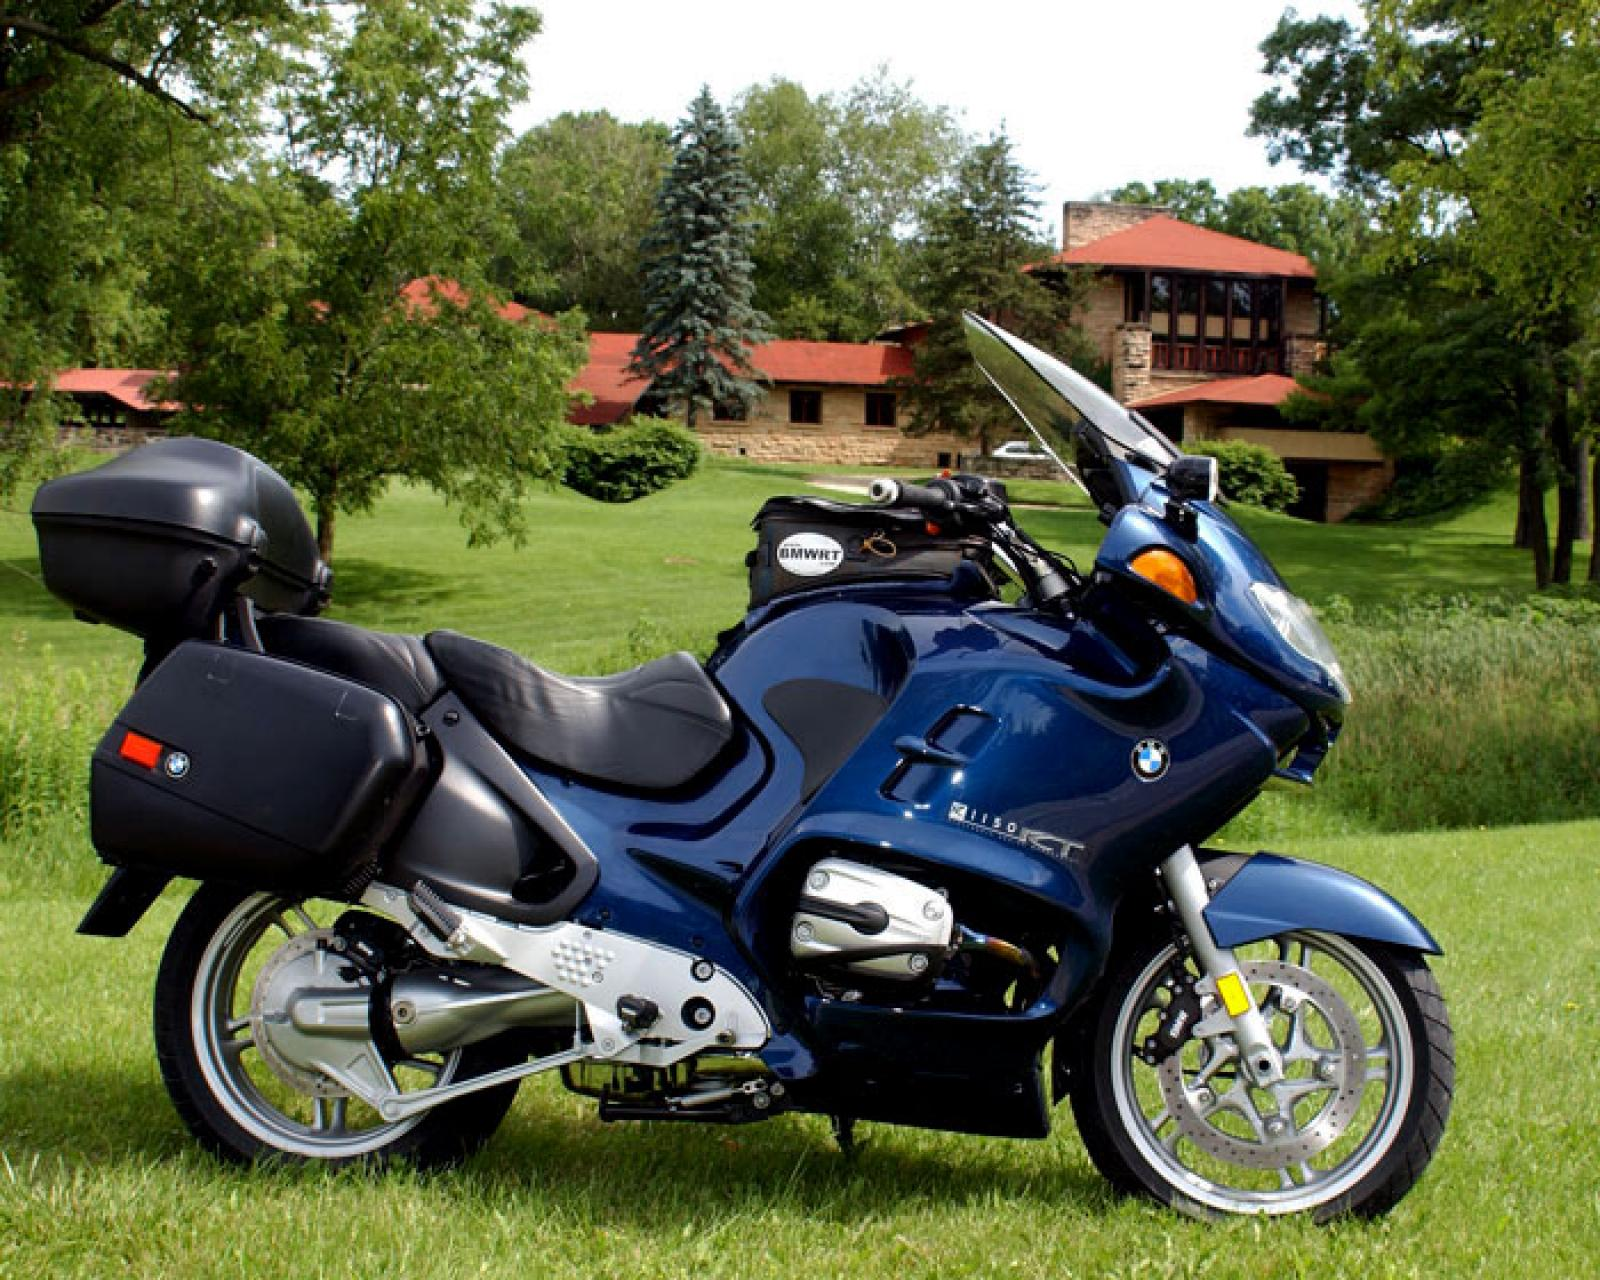 BMW R1150RT 2004 images #7788